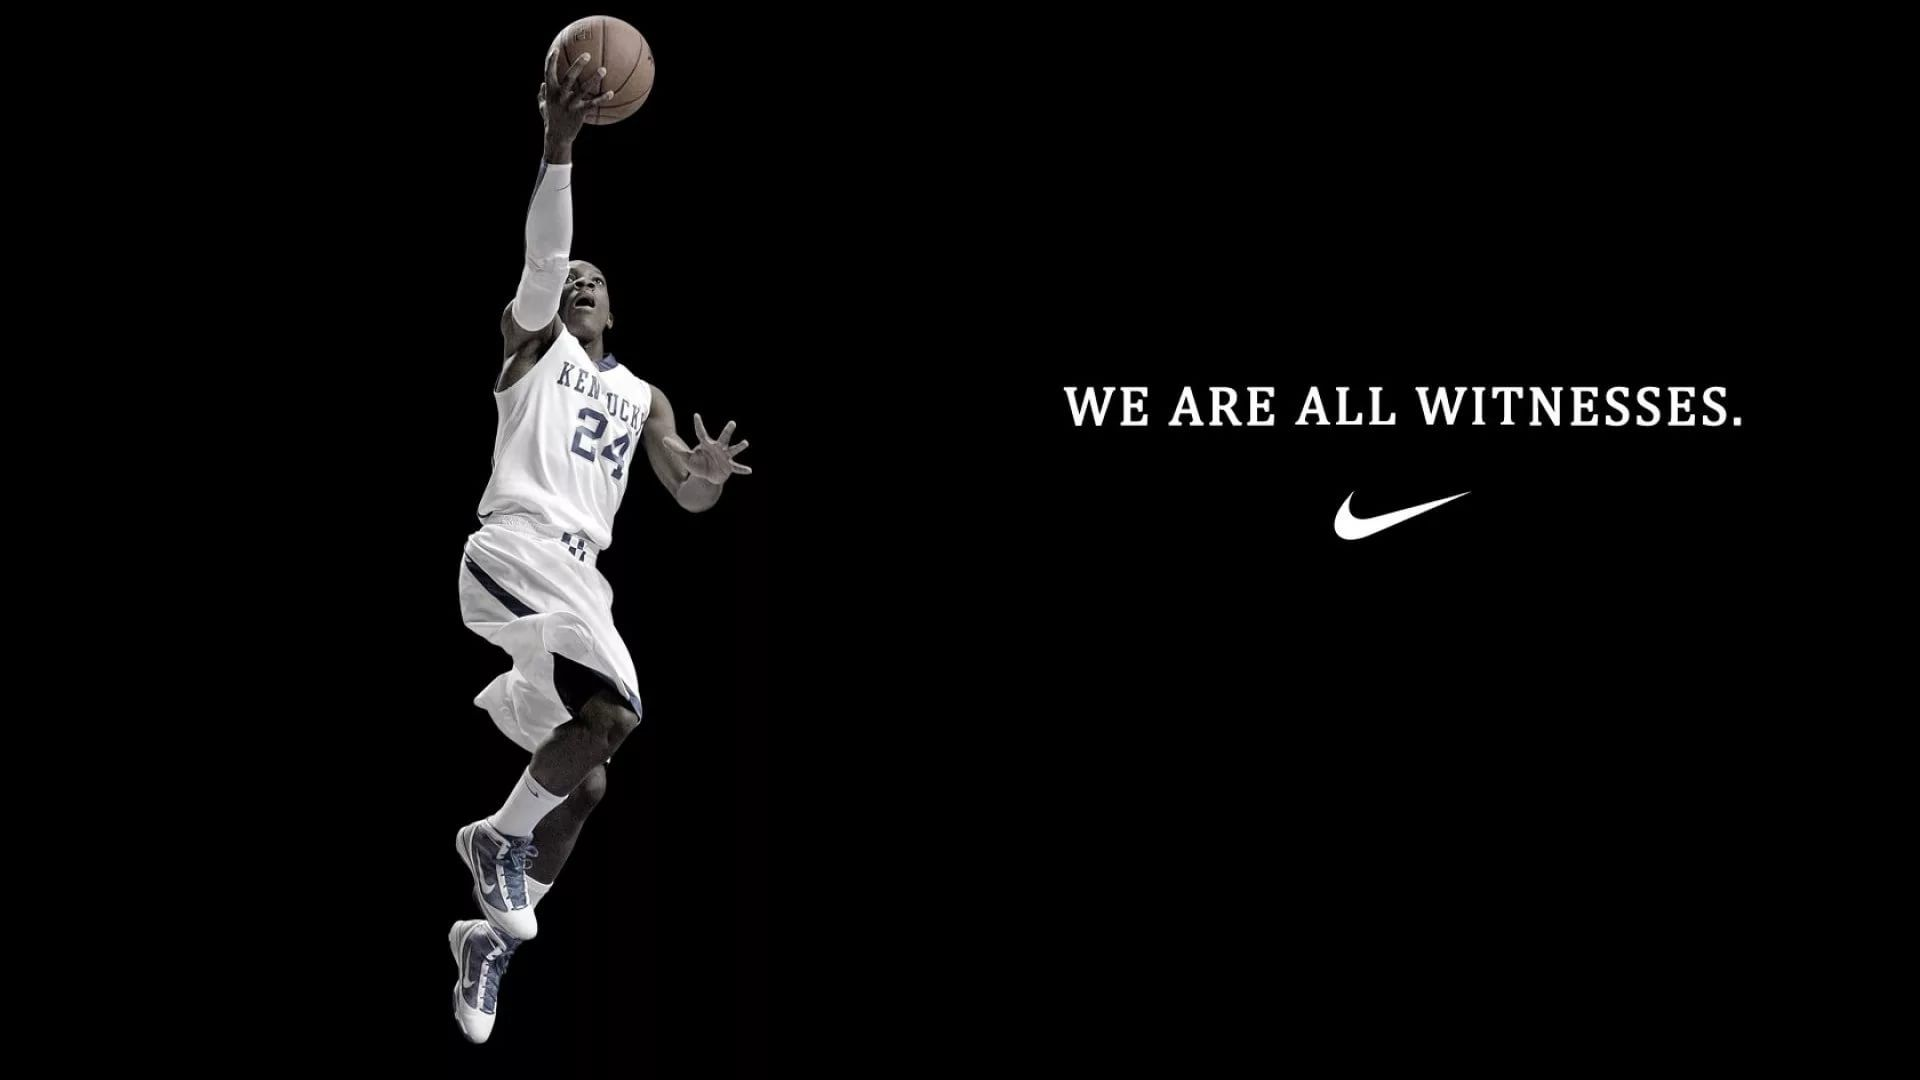 Nike Basketball Wallpapers 23 Images Wallpaperboat